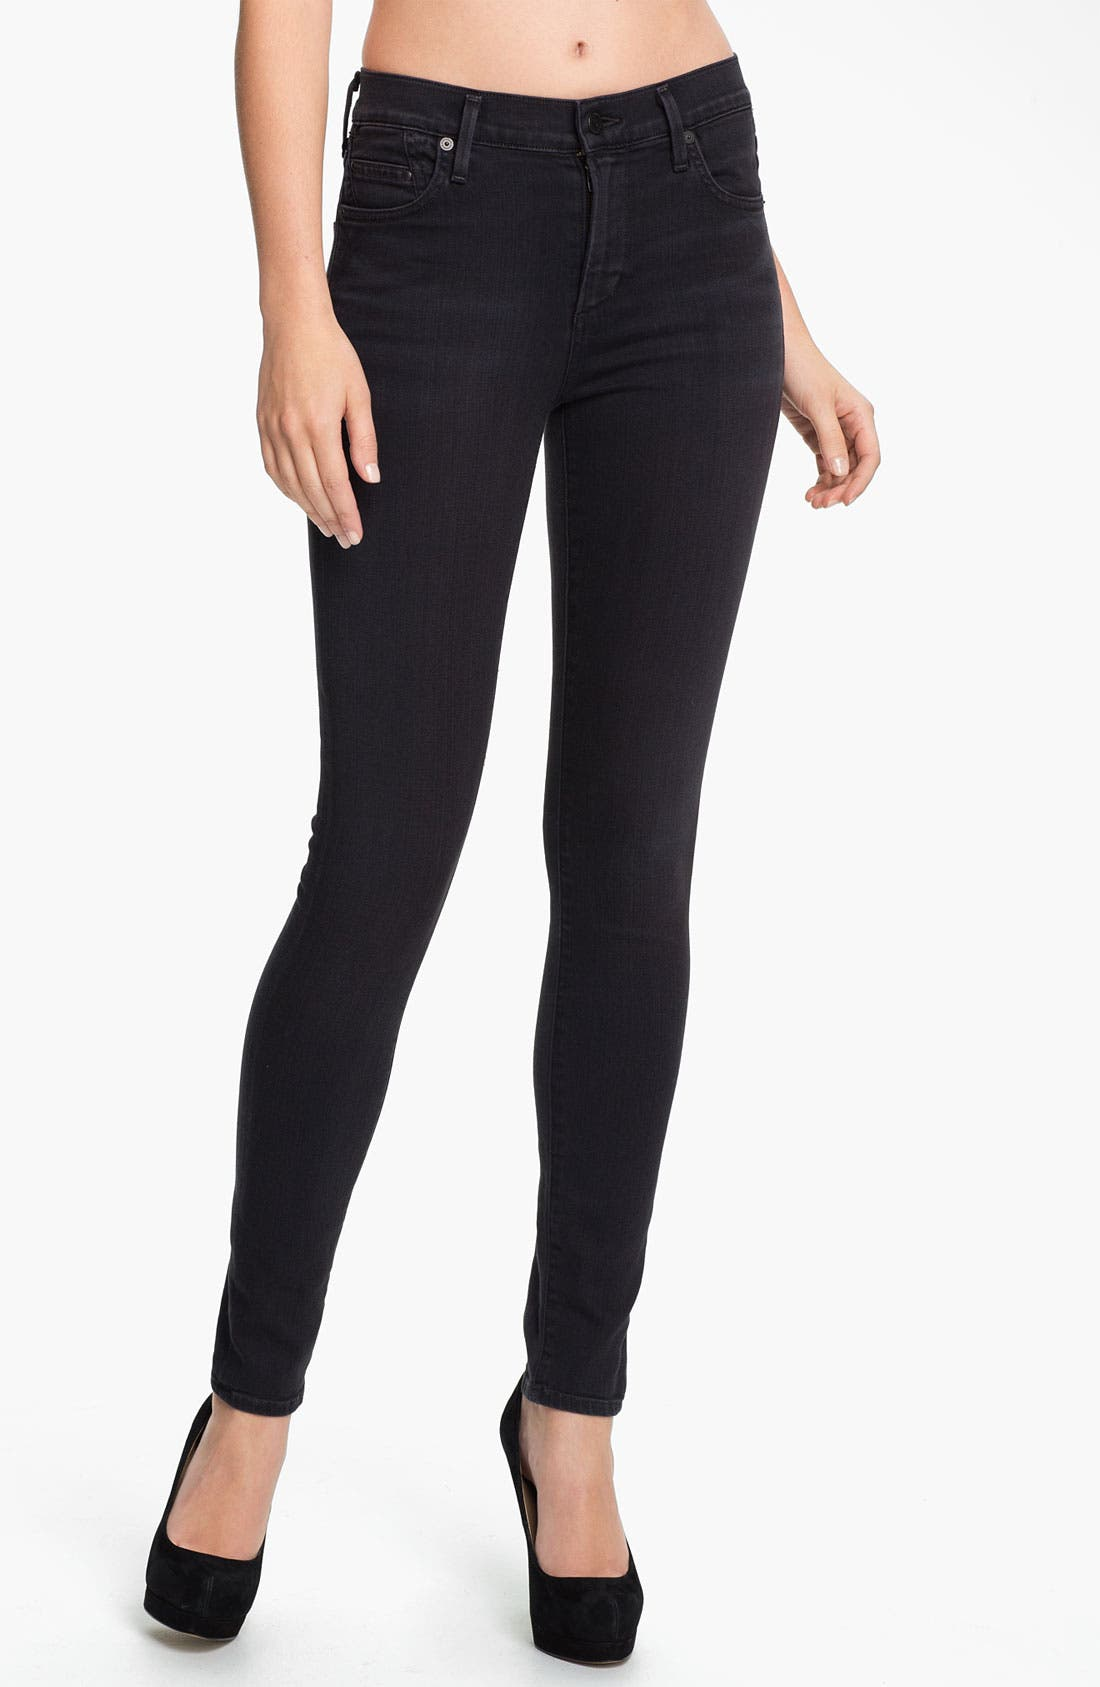 Alternate Image 1 Selected - Citizens of Humanity 'Rocket' High Rise Skinny Jeans (Goth)